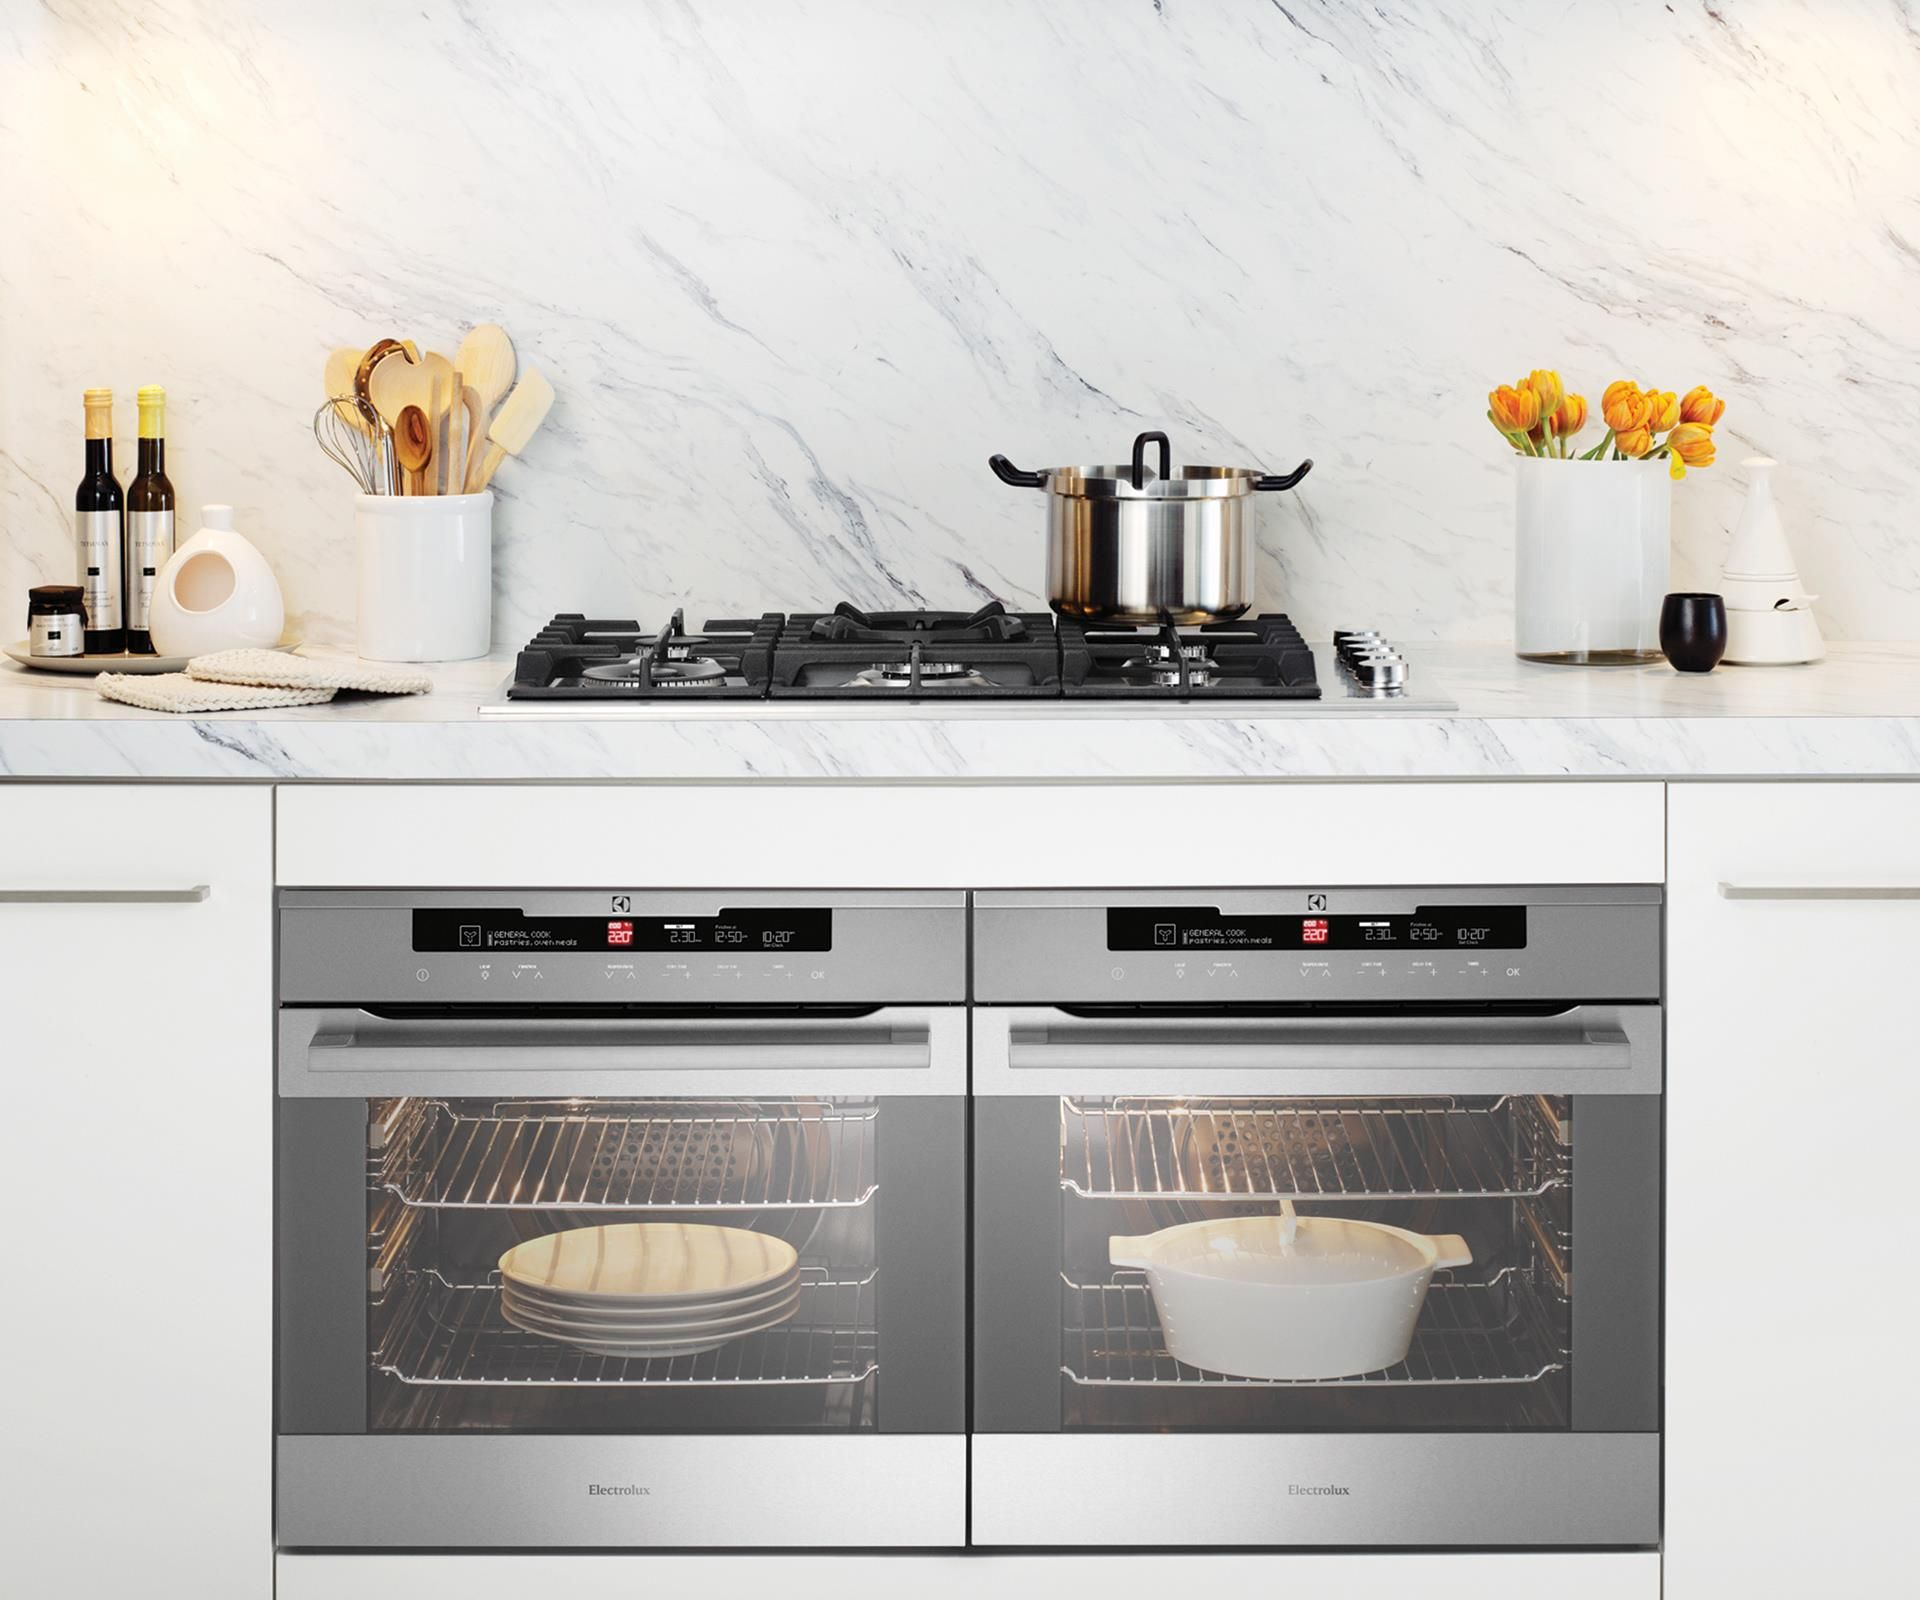 Side by side double oven gas stove - From Budget To Luxe And Freestanding Ovens With Built In Induction Cooktops To Compact